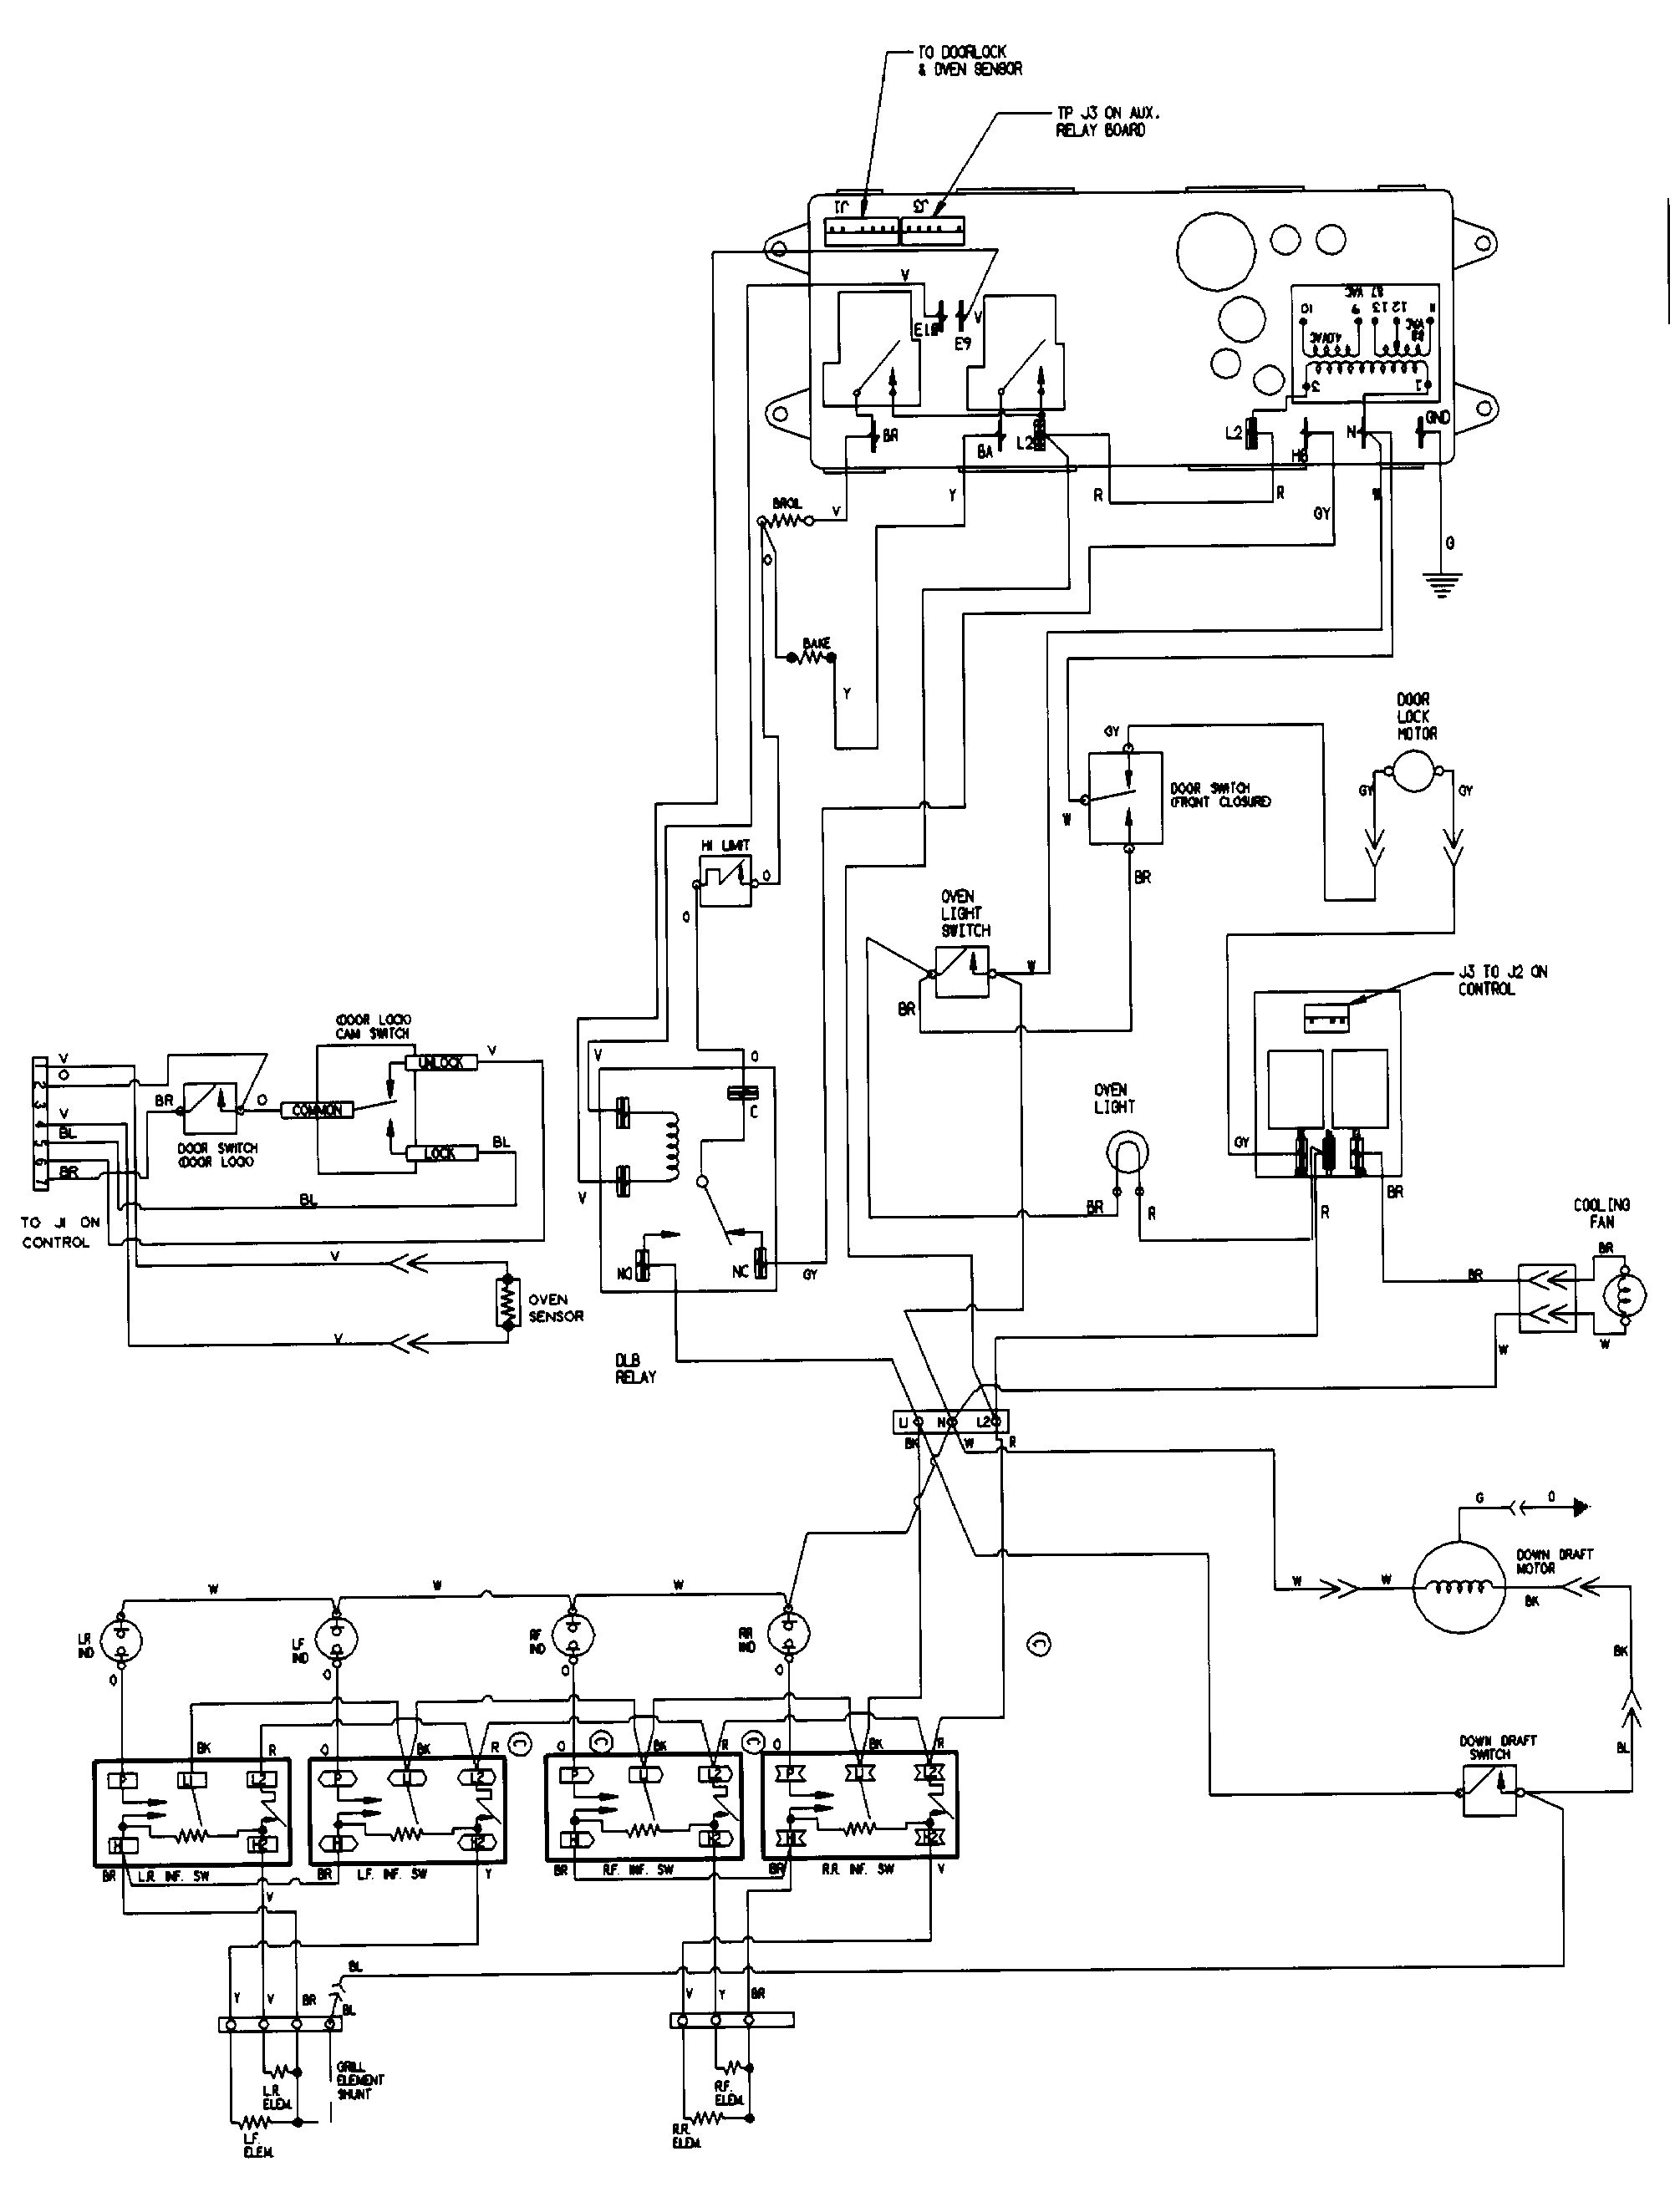 wiring information sve47100bc wc parts?resize\\\=665%2C866\\\&ssl\\\=1 diagrams 788942 imperial fryer wiring diagram parts town imperial ifs-40 wiring diagram at fashall.co